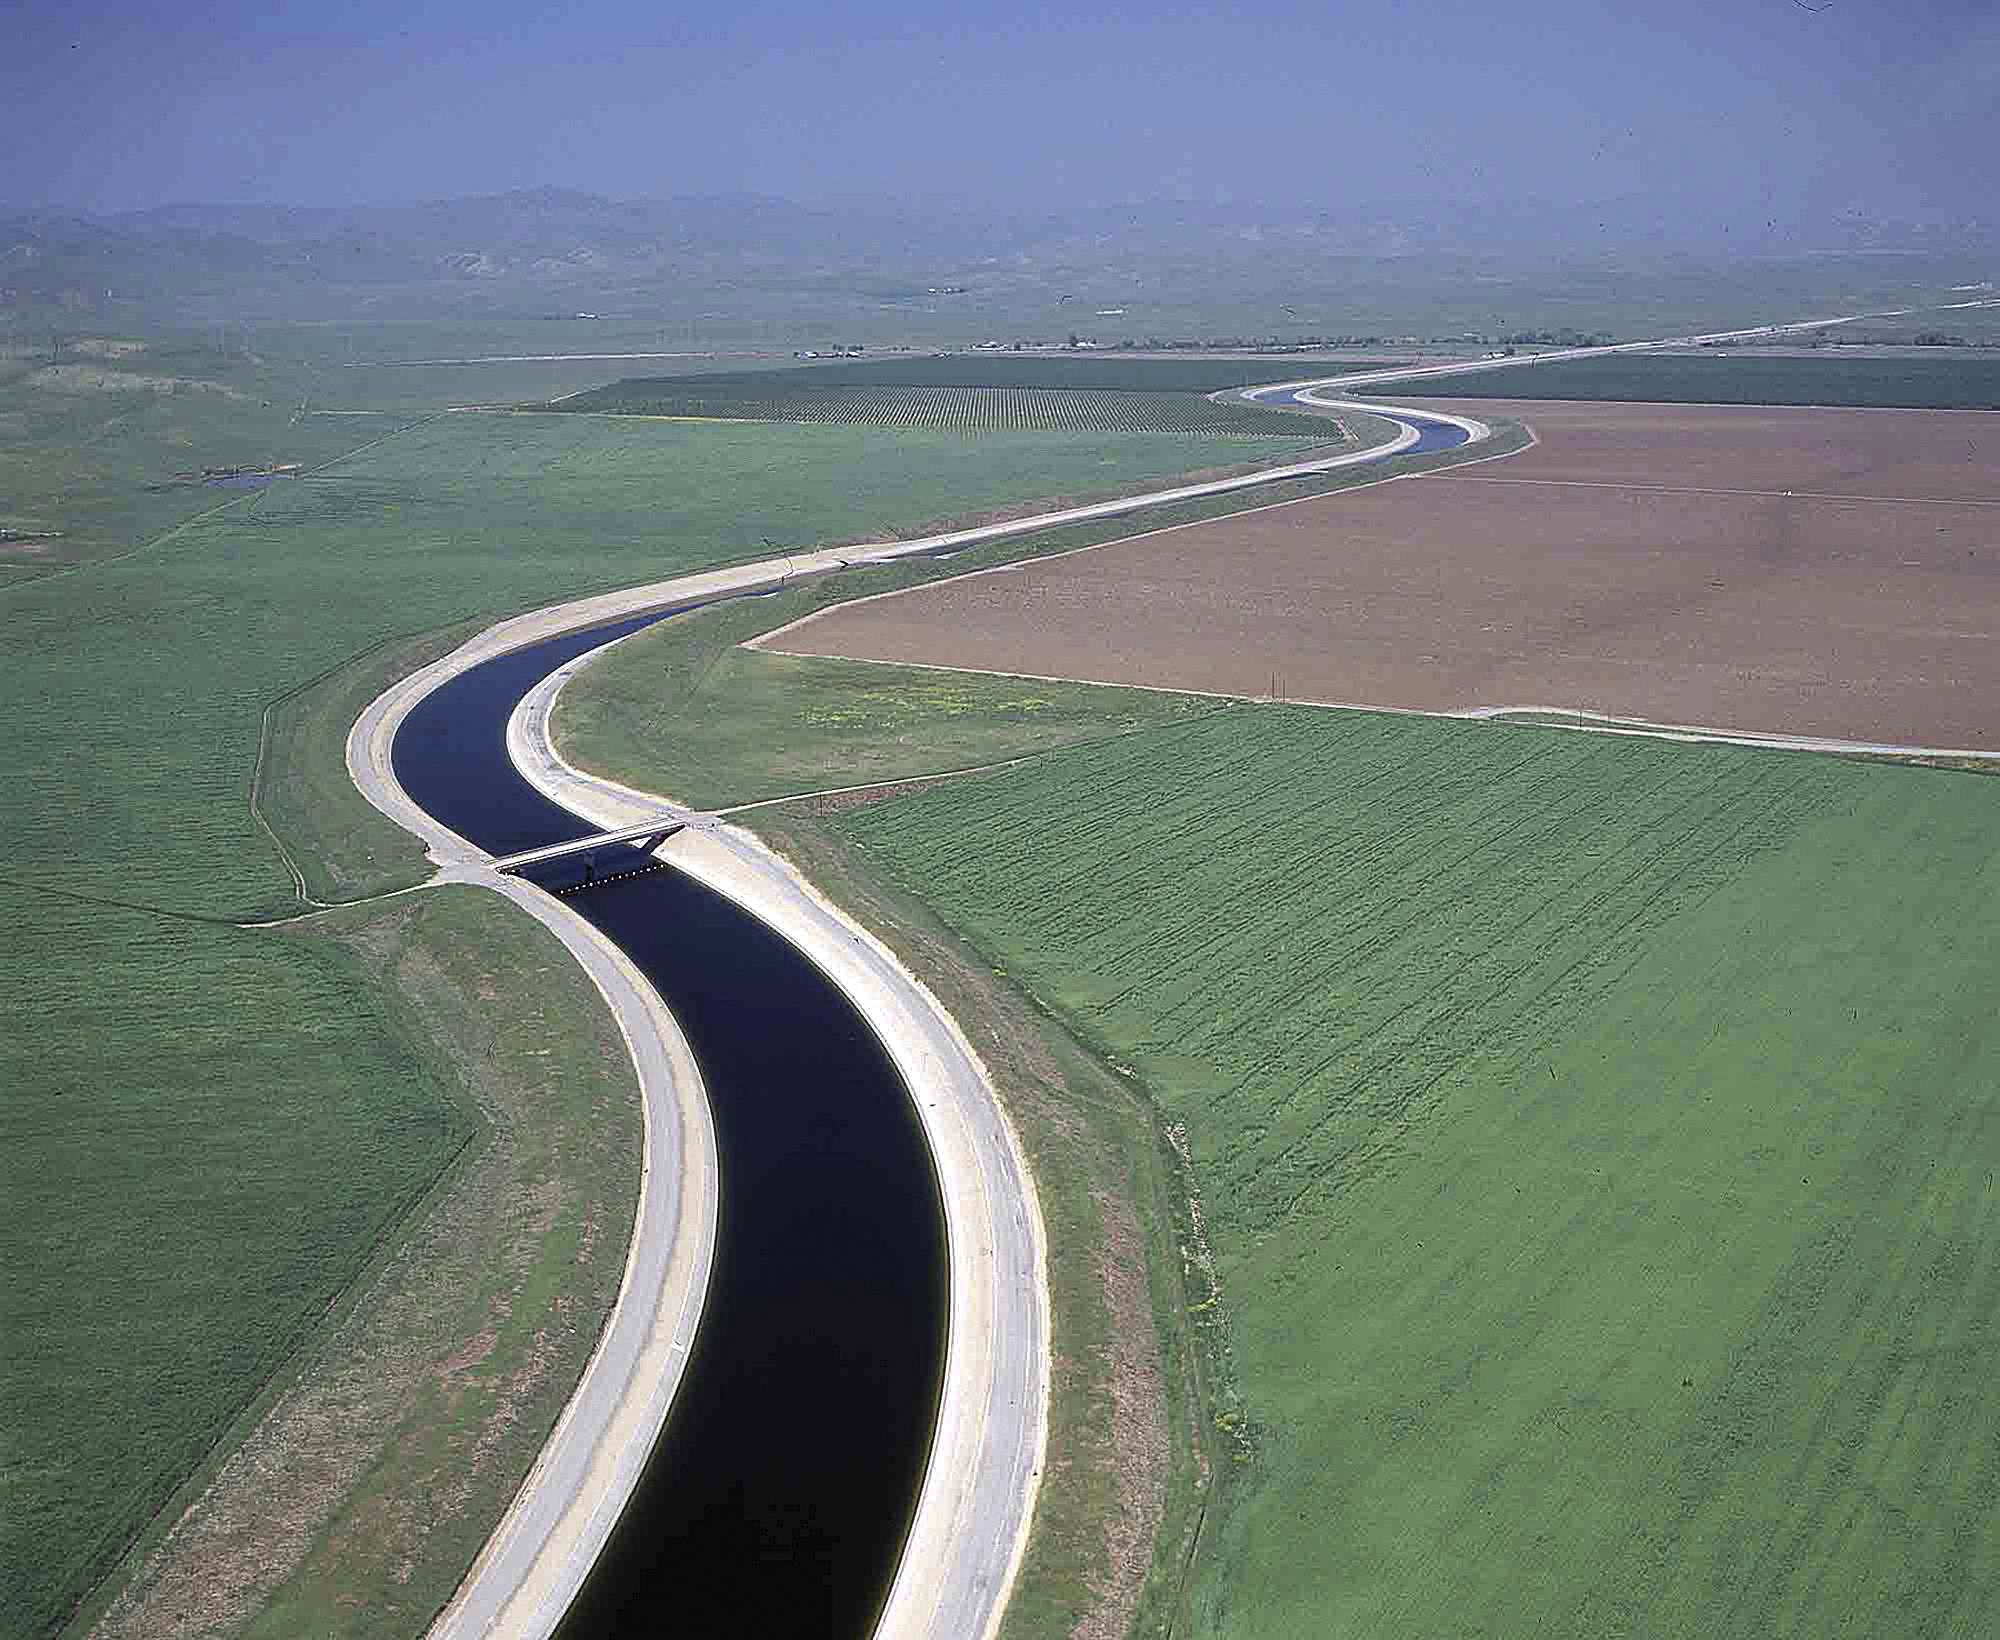 Water makes its way south through the Central Valley by way of the California Aqueduct. The California Aqueduct has been ferrying water from the state's verdant north to the south's arid croplands and cities since Gov. Jerry Brown's father was in office half a century ago. But now, amid one of the worst droughts on record, a group of farmers want to route some of that water back uphill.